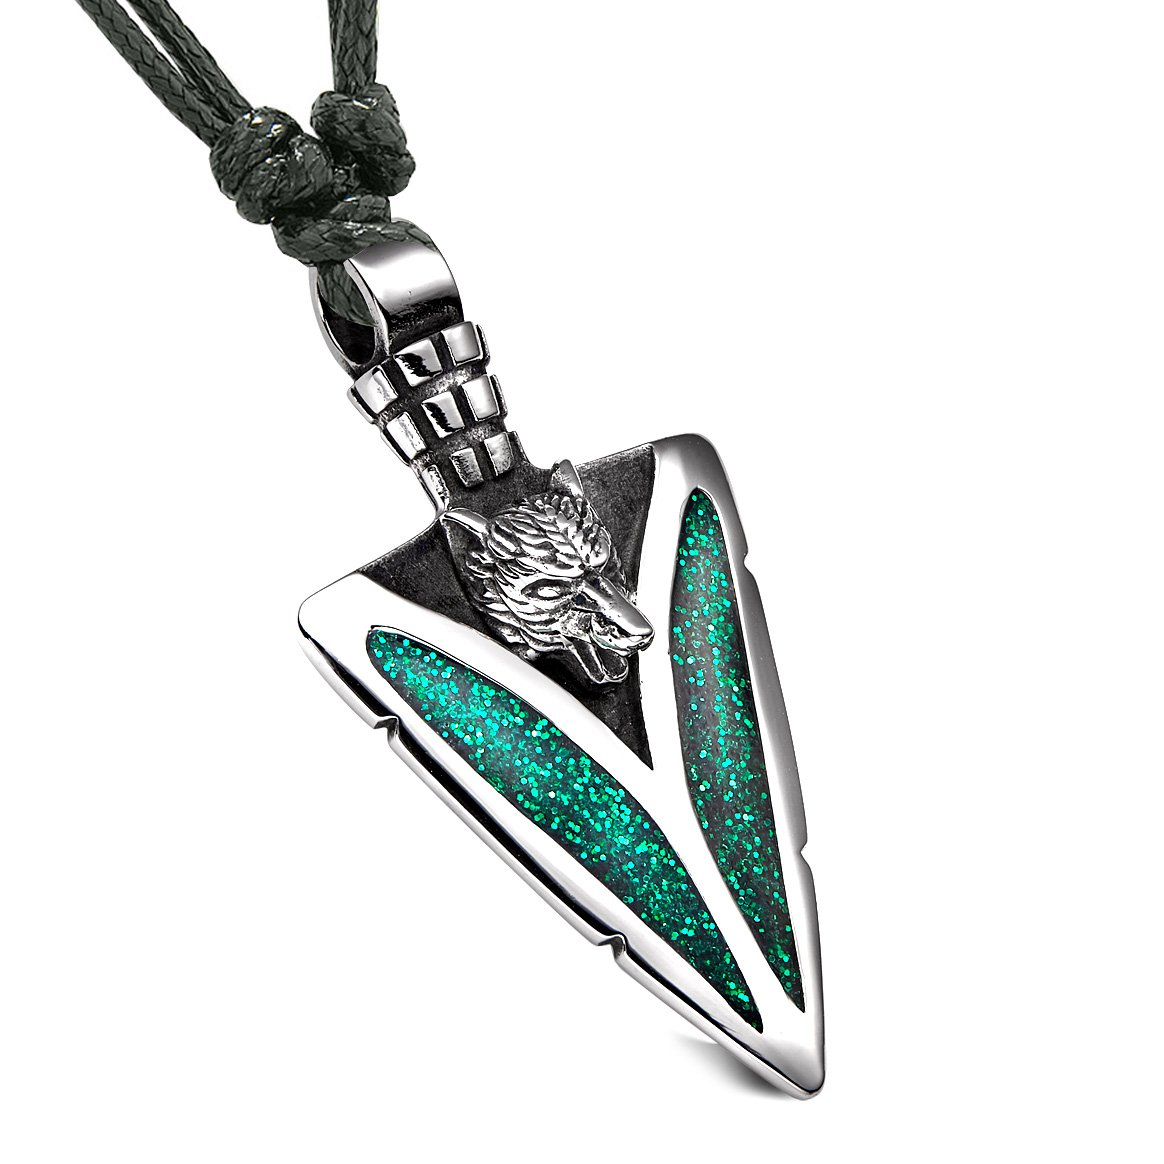 Arrowhead Howling Wolf Courage Powers Protection Amulet Sparkling Royal Green Pendant Adjustable Necklace